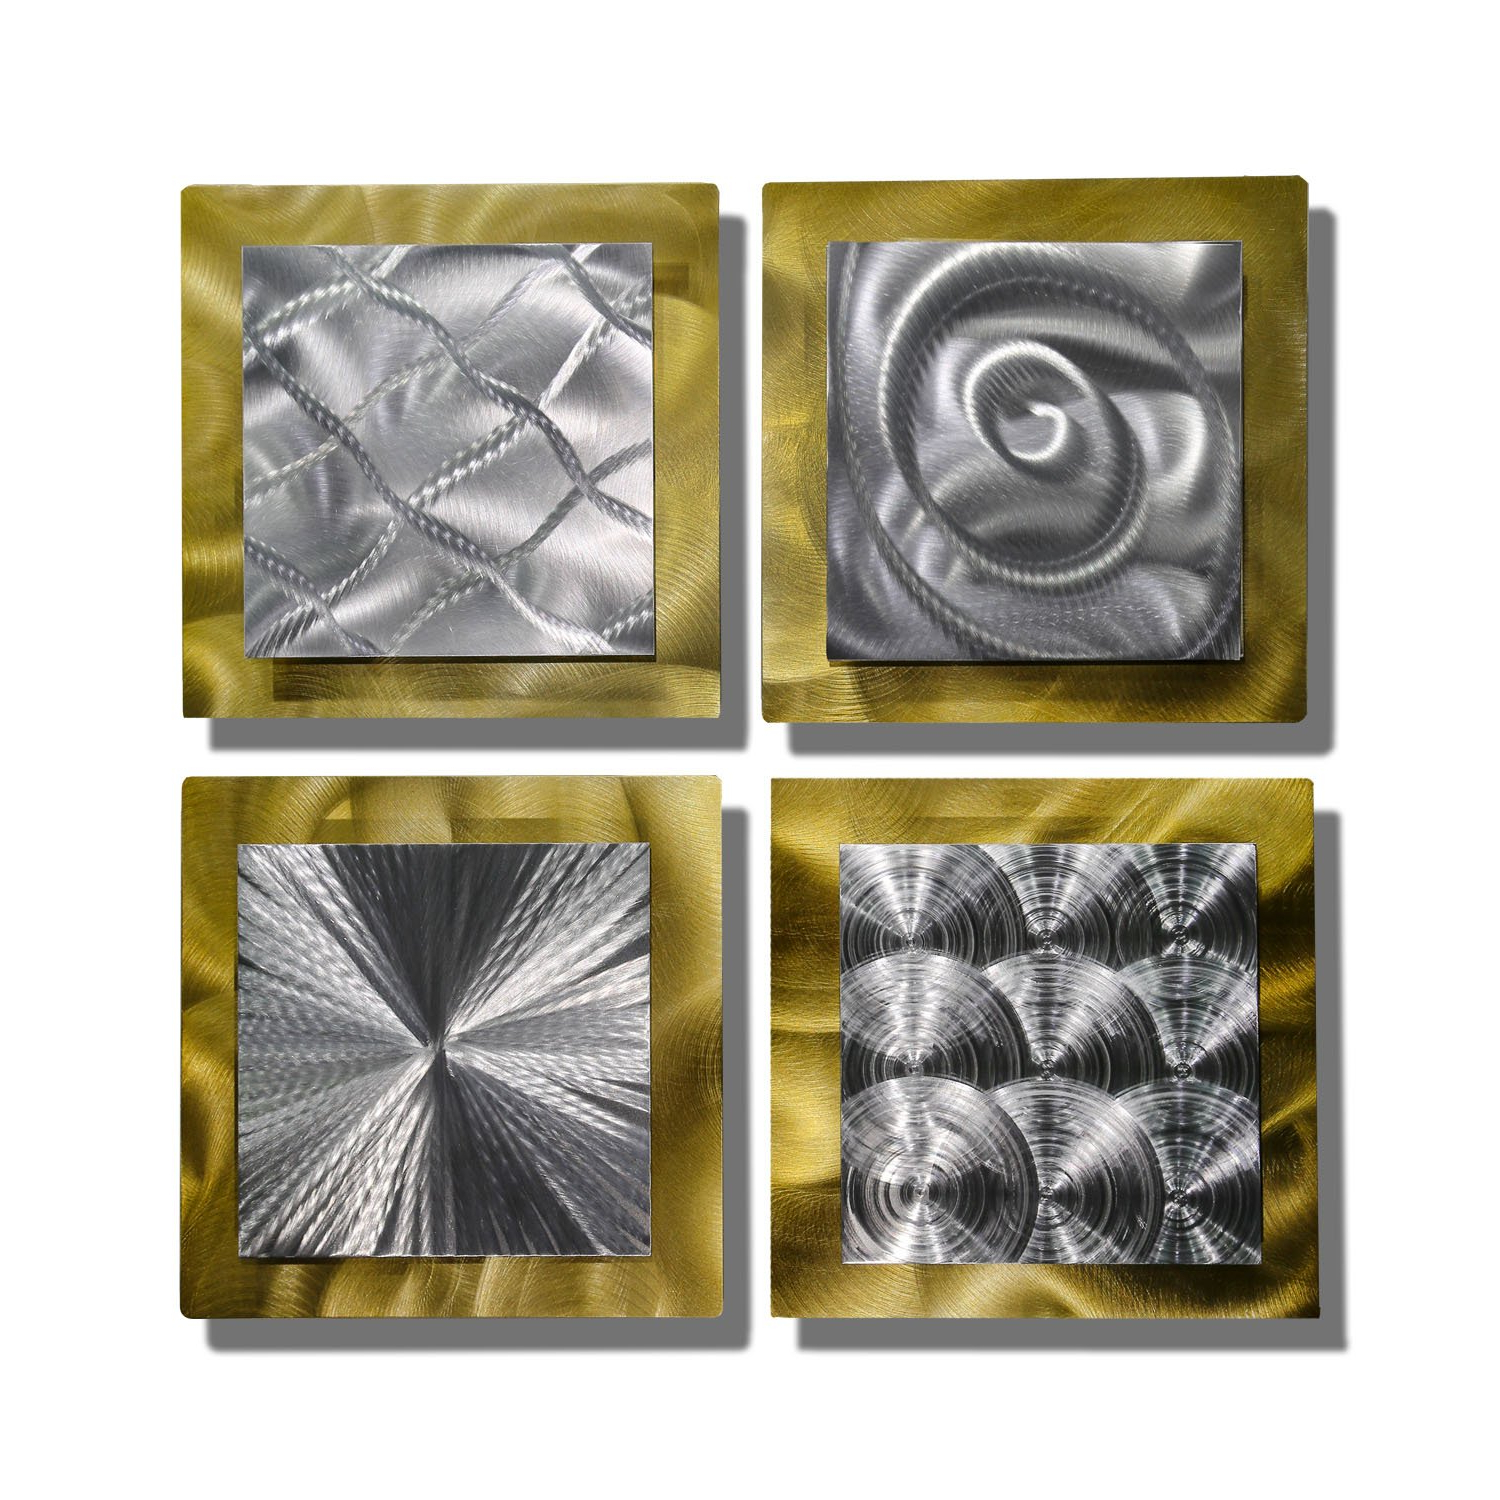 Amazon: Statements2000 Gold & Silver Contemporary Metal Wall Art In Preferred 4 Piece Metal Wall Plaque Decor Sets (View 4 of 20)